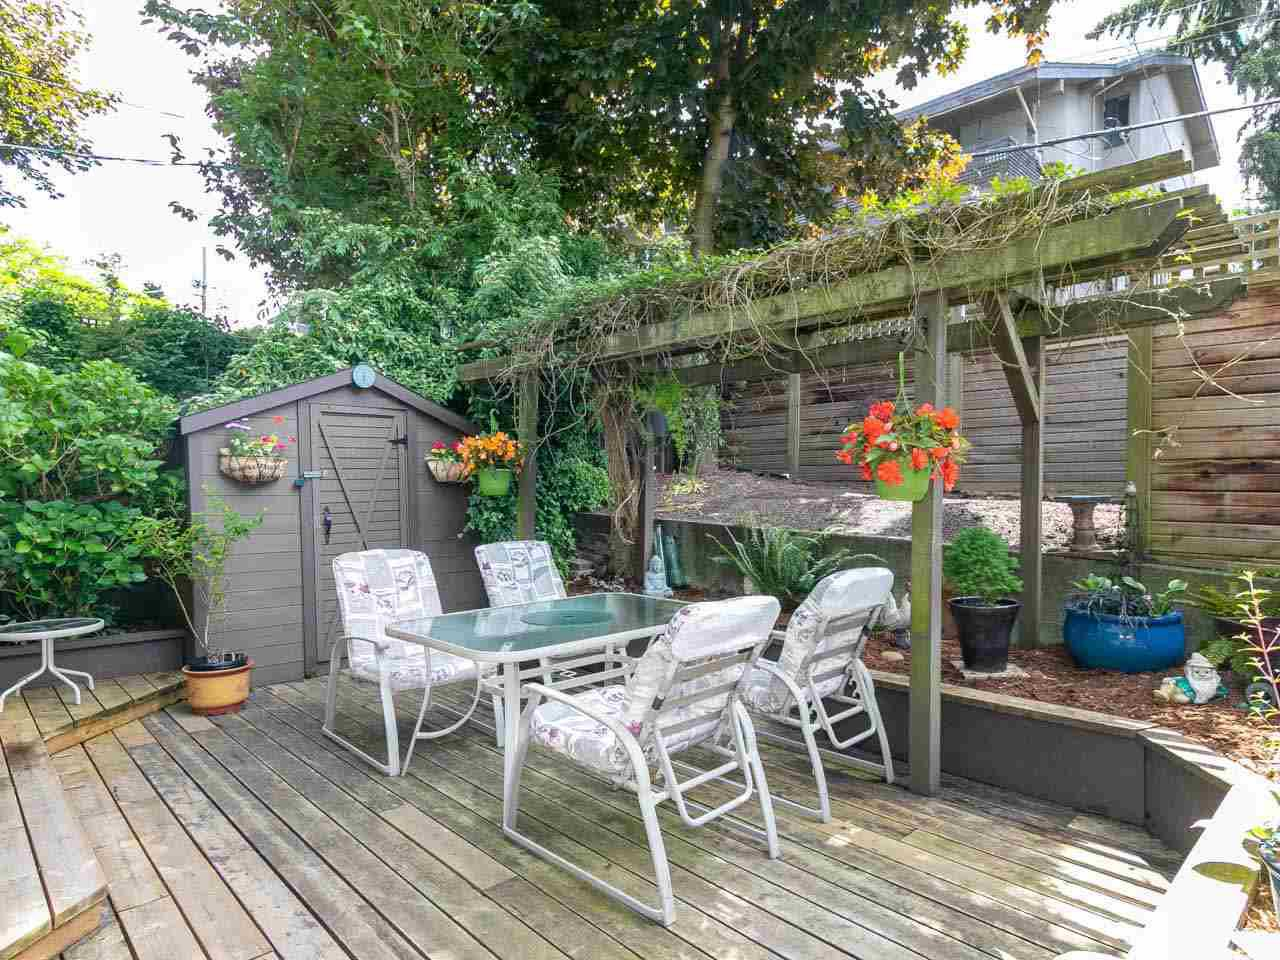 """Photo 3: Photos: 104 1516 CHARLES Street in Vancouver: Grandview VE Condo for sale in """"GARDEN TERRACE"""" (Vancouver East)  : MLS®# R2295886"""